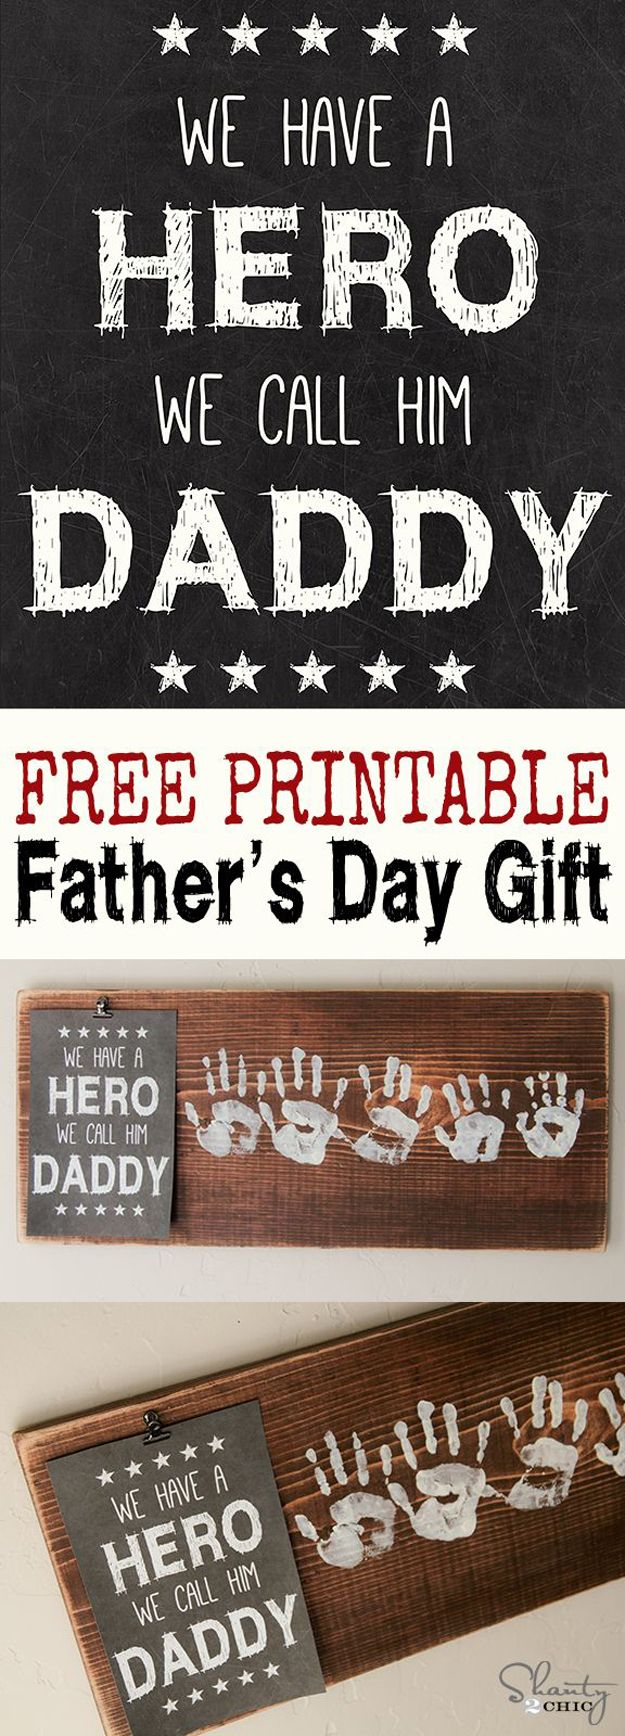 Best 25+ Diy father's day gifts ideas on Pinterest | Father's day ...